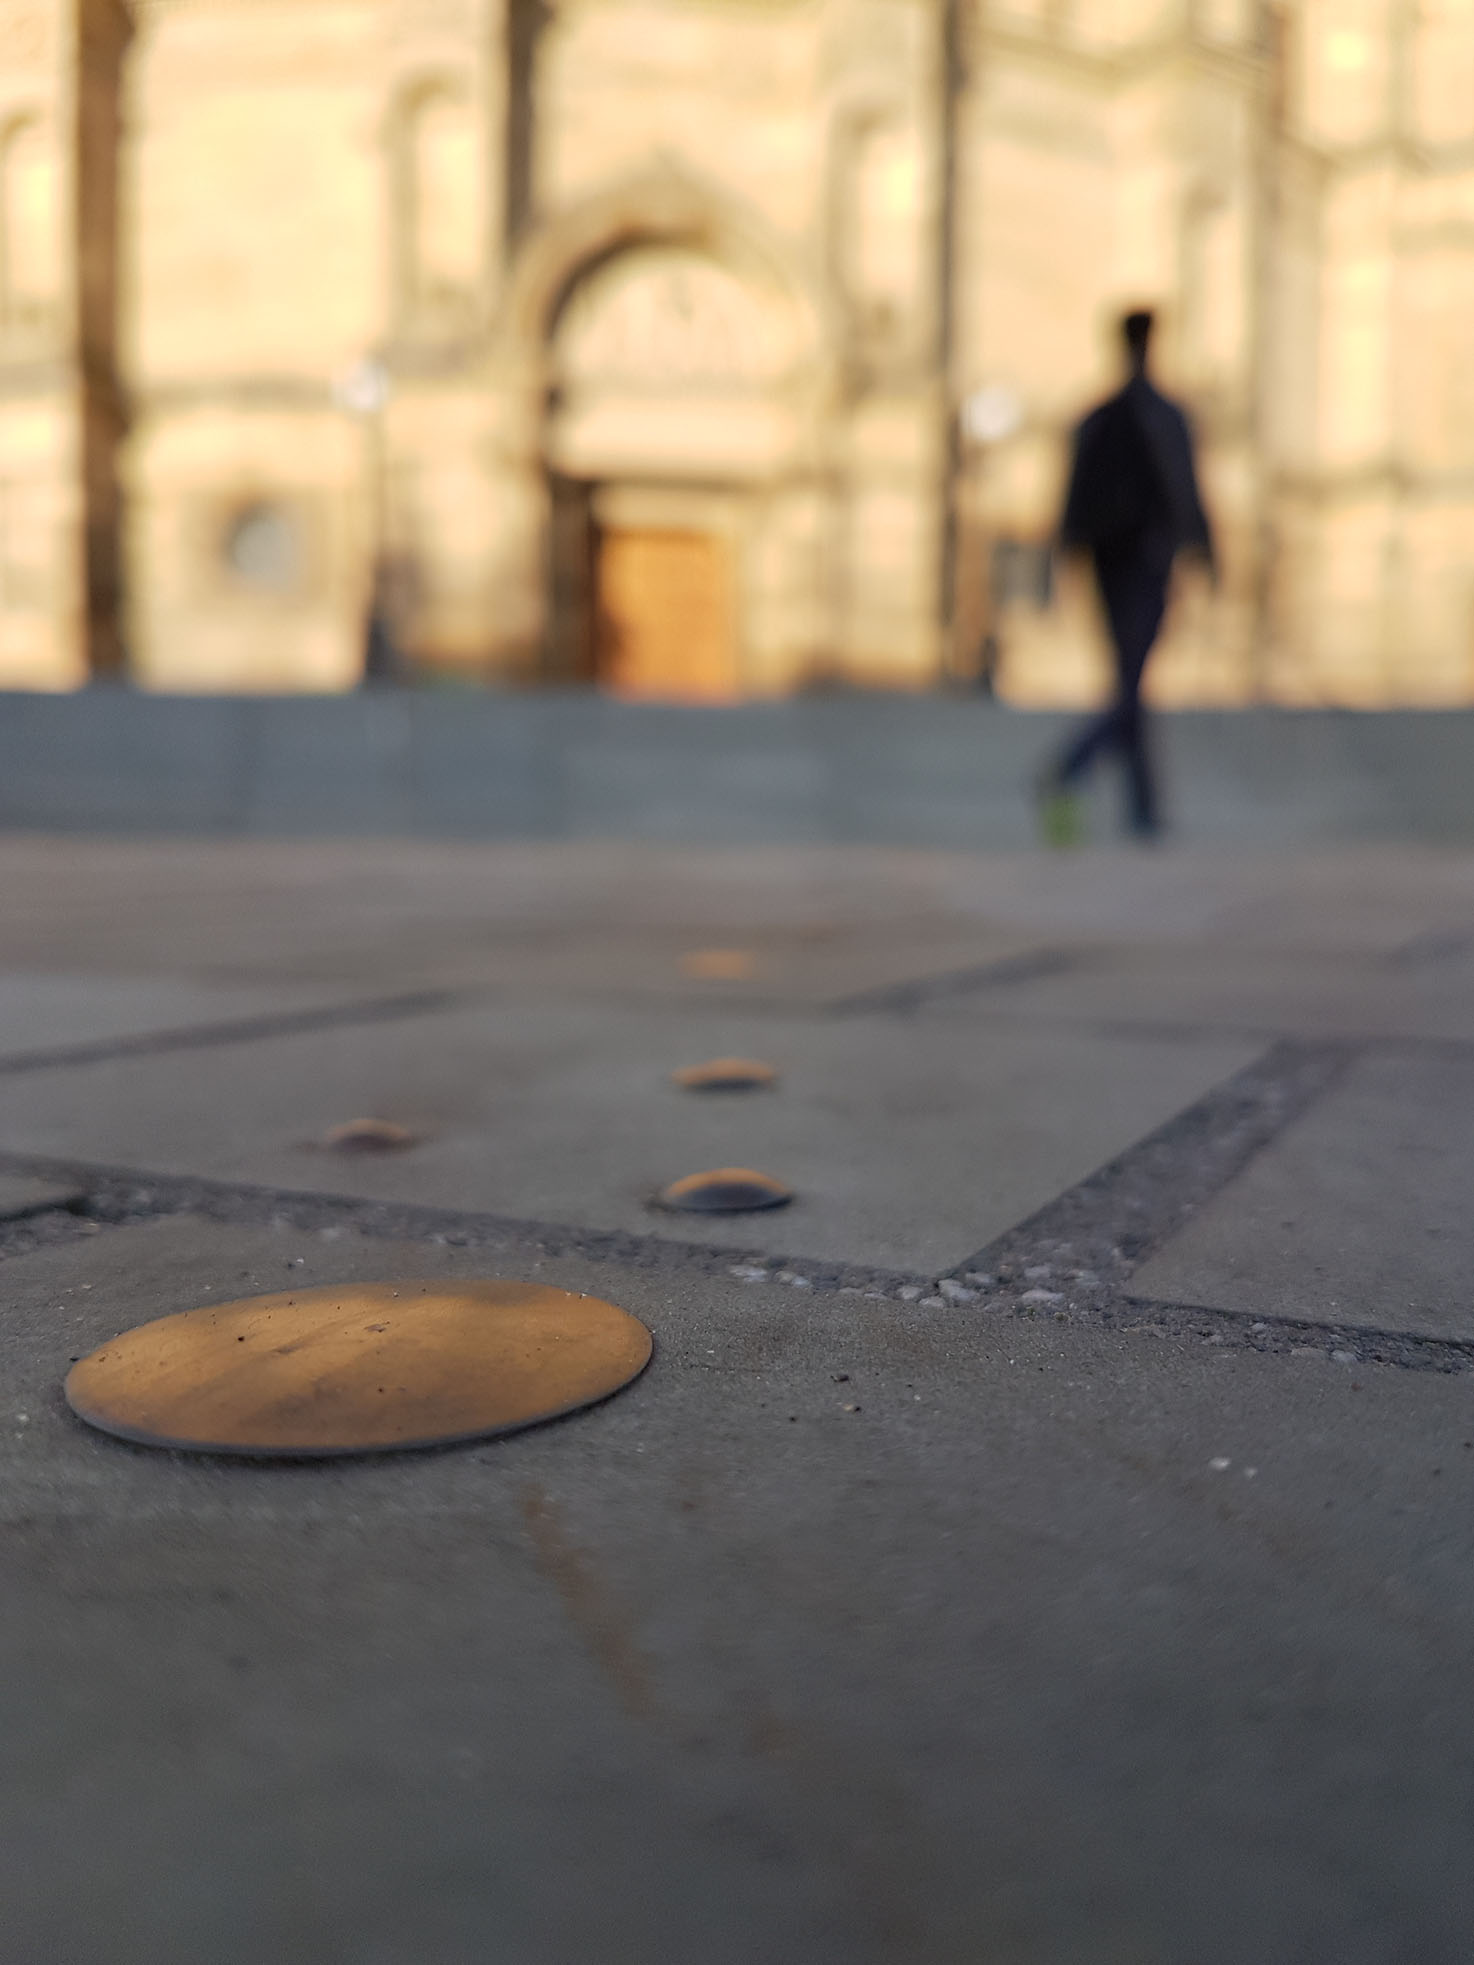 a close up of metal circles laind into an outdoor floor. In the background is a blurred silhouette of a person.